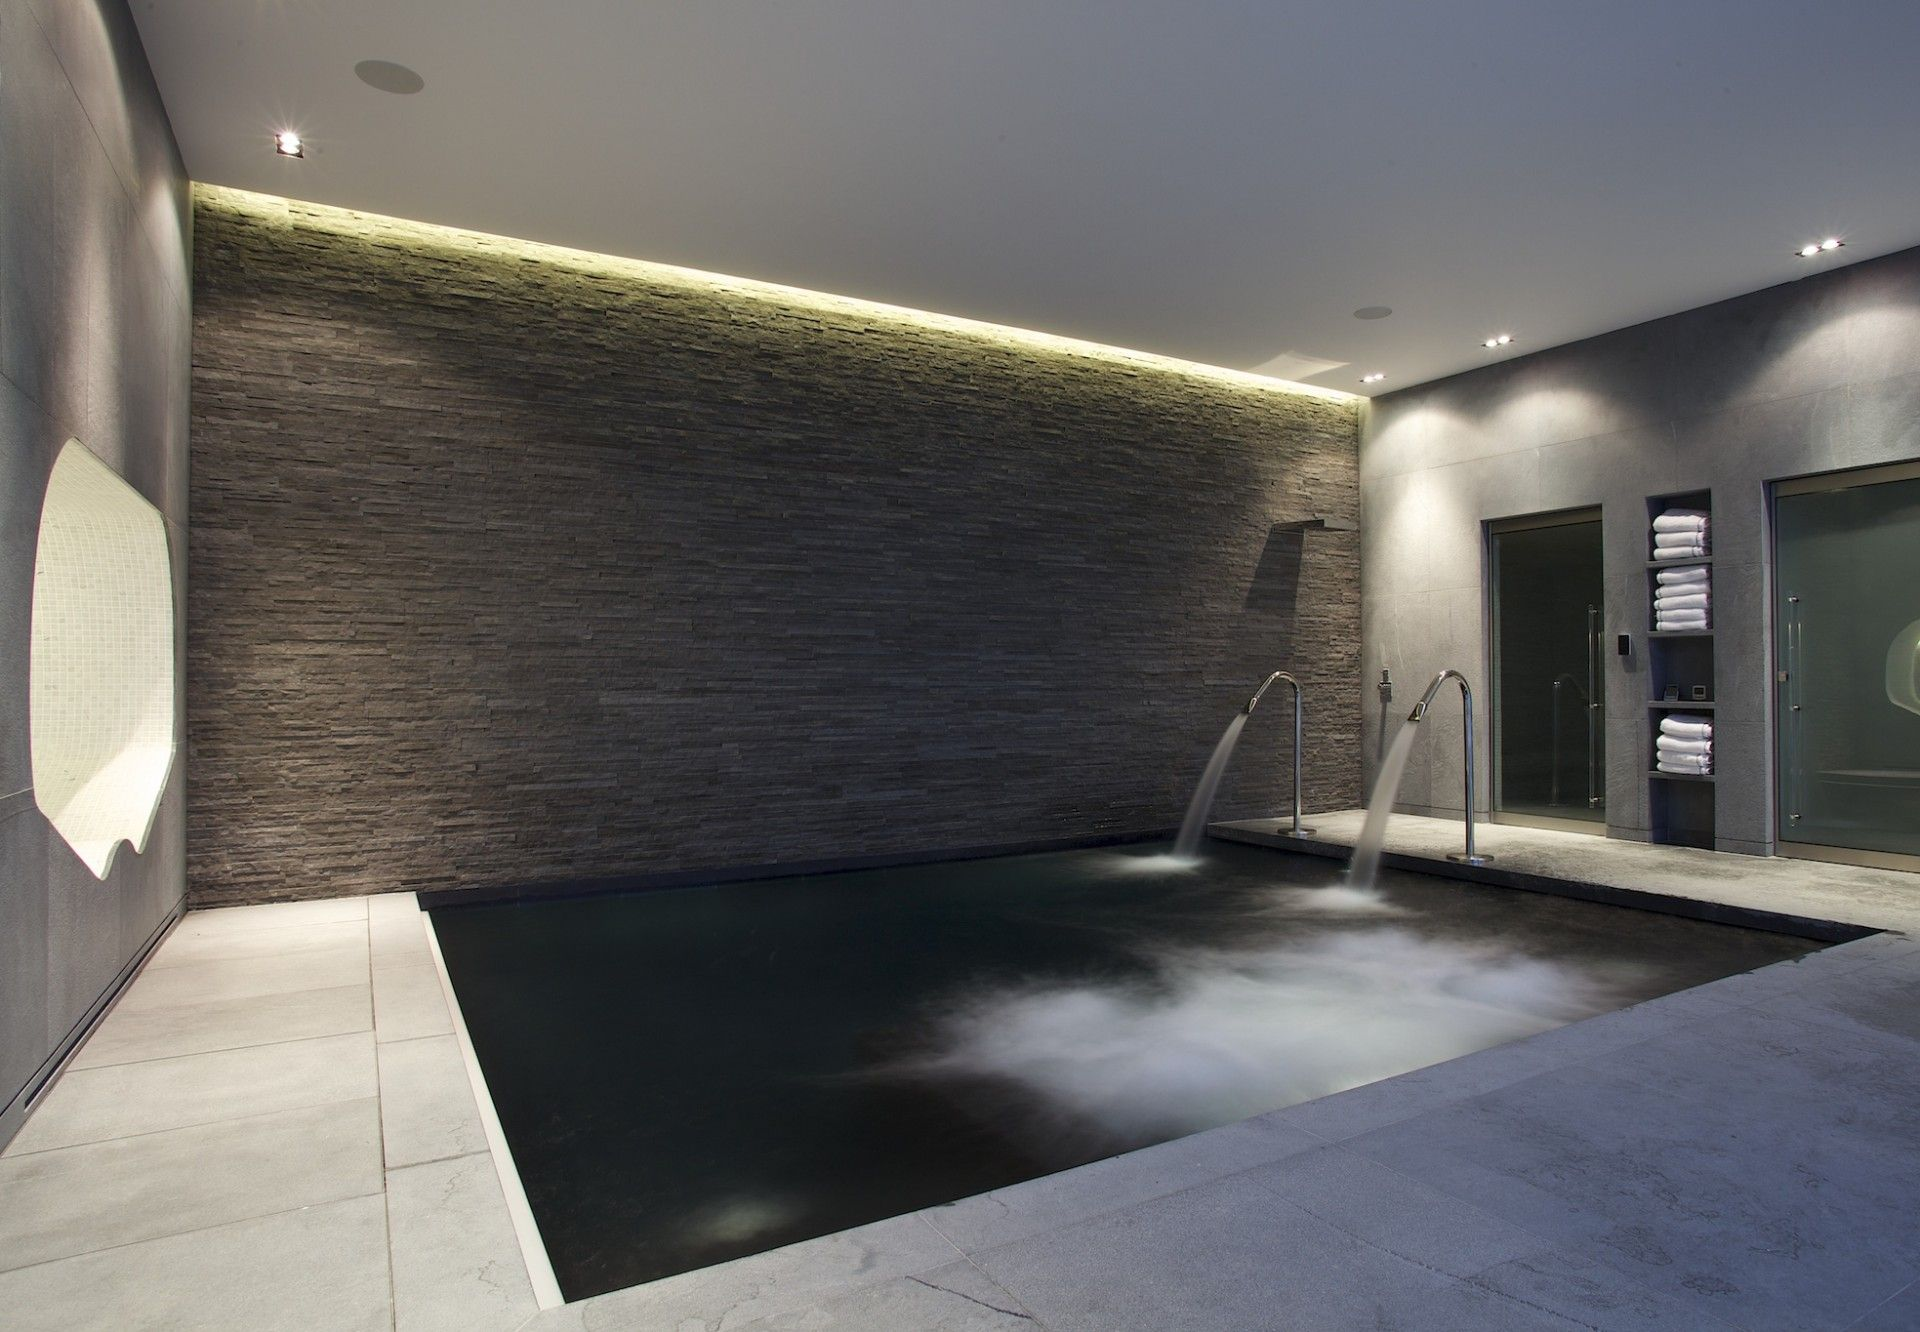 Basement spa pool london gardens pools outdoor showers Basement swimming pool construction